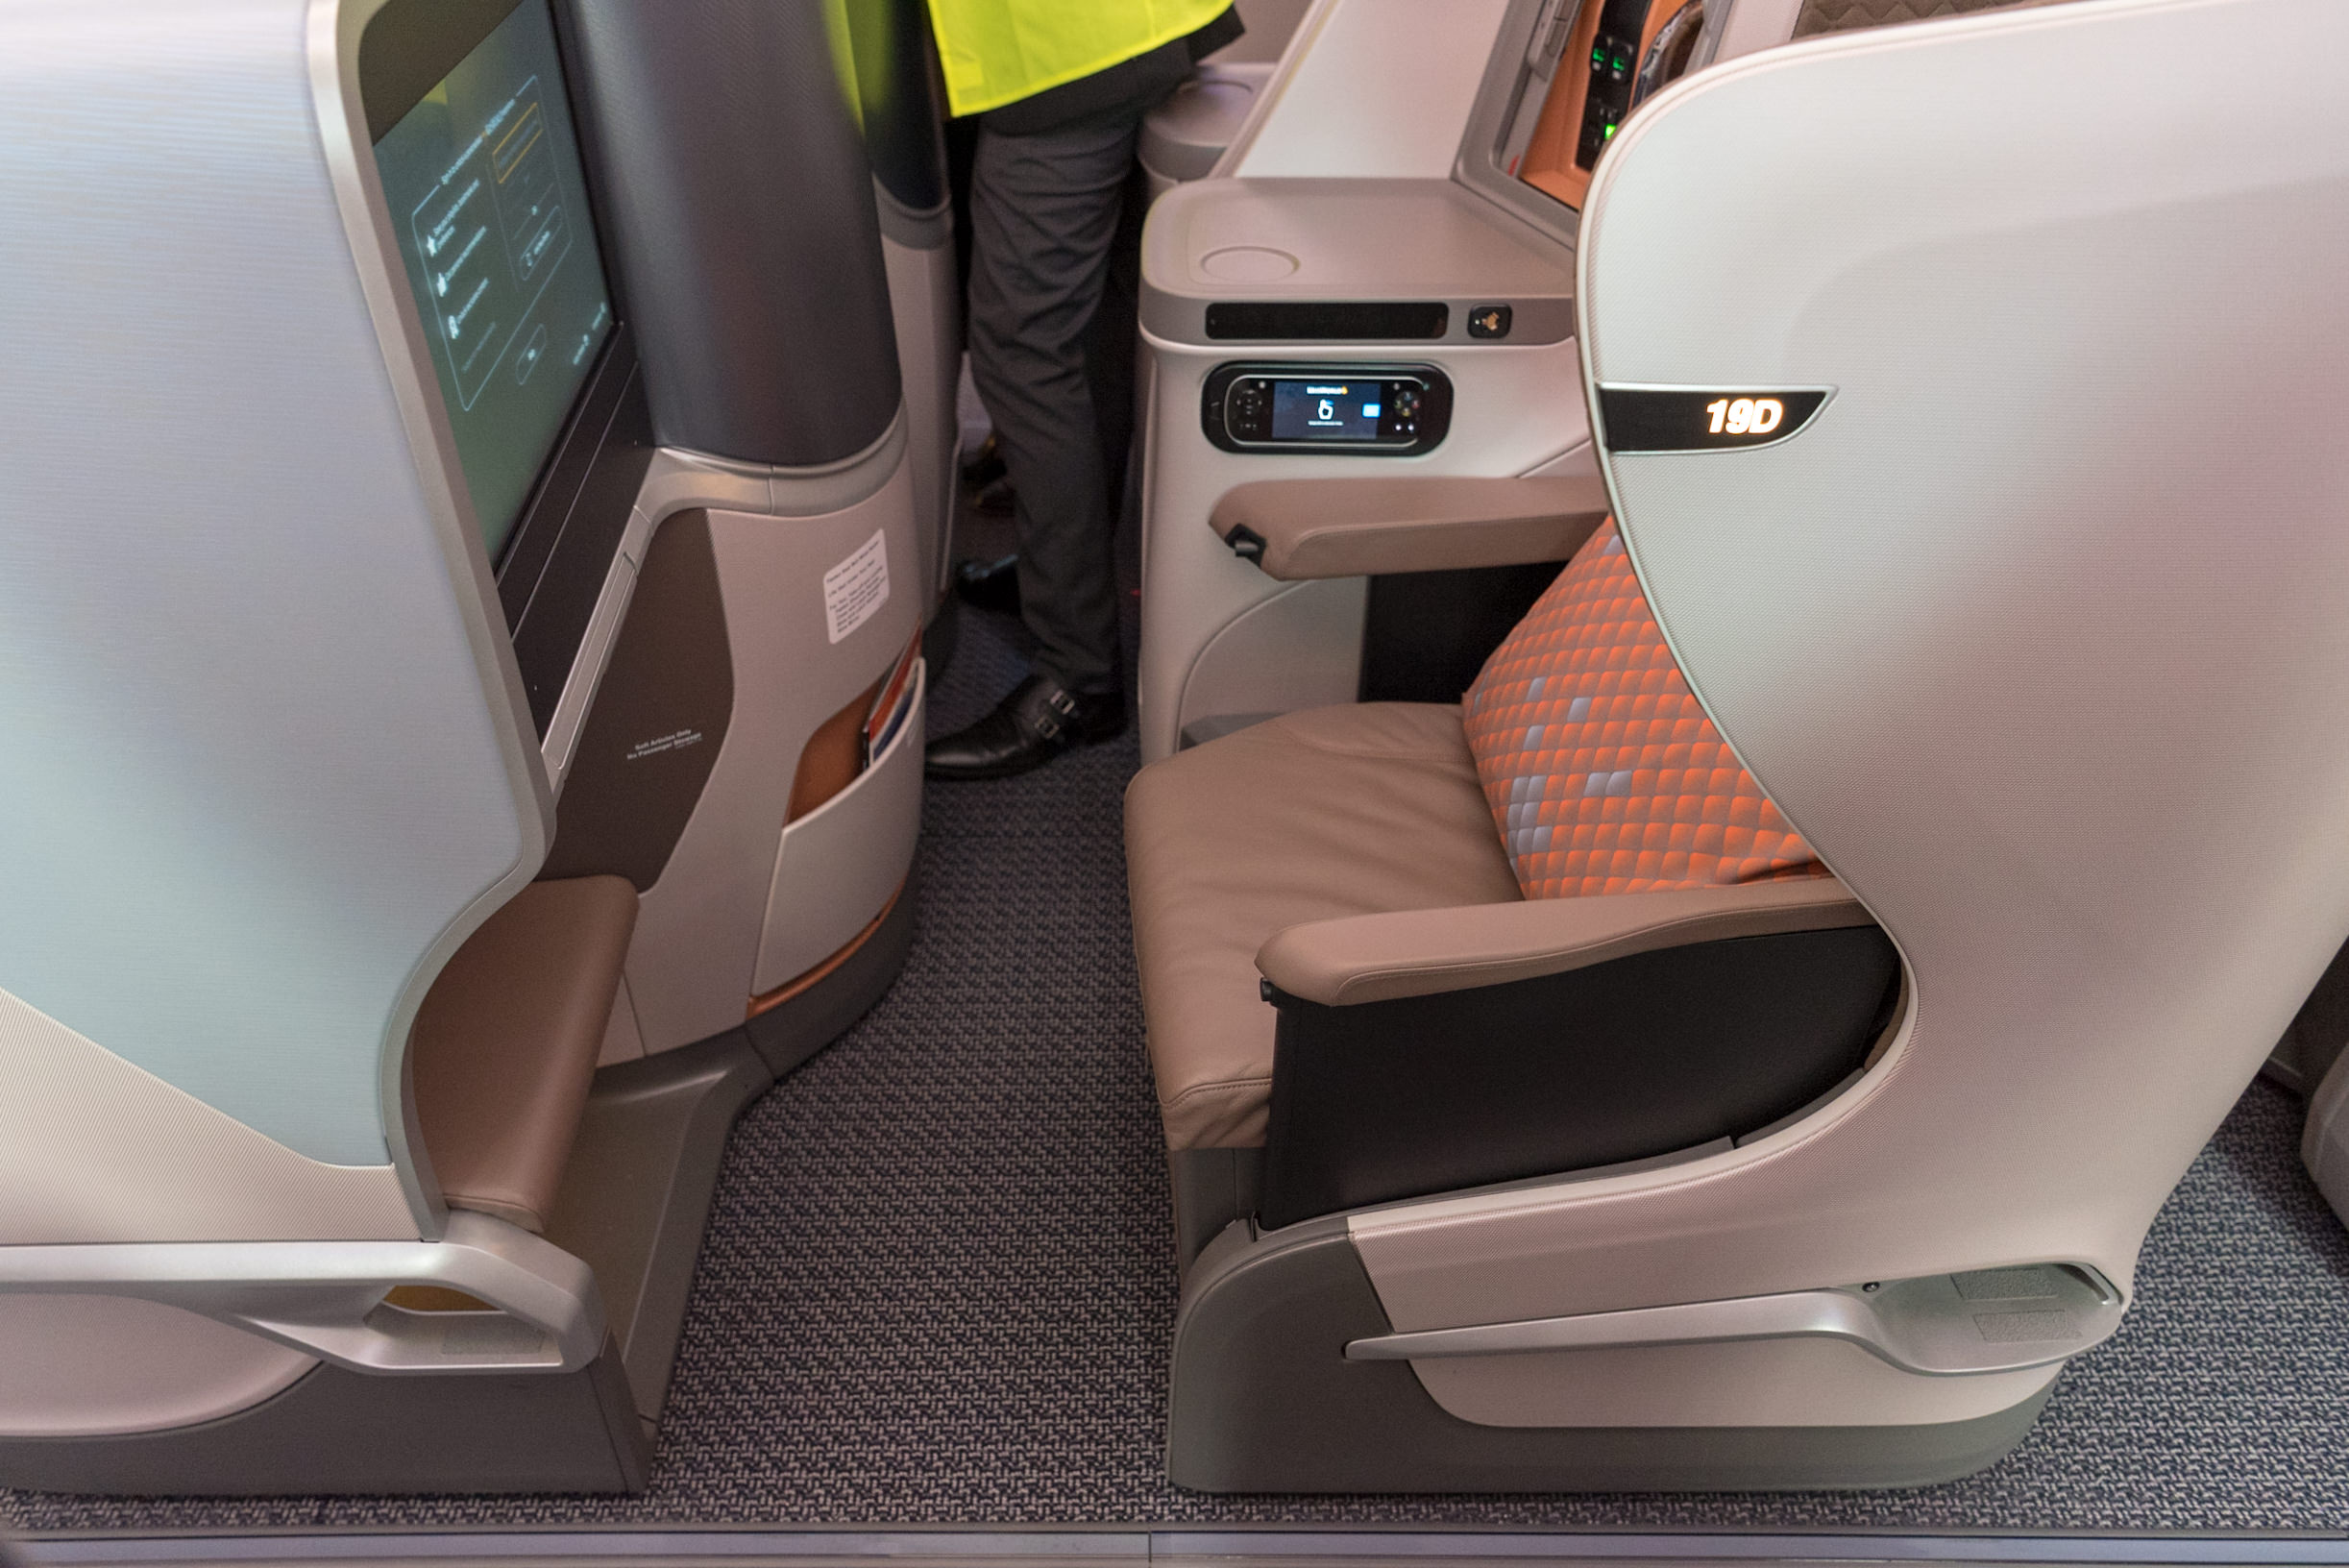 Seat 19D  New Regional Business Class (2018) - Singapore Airlines